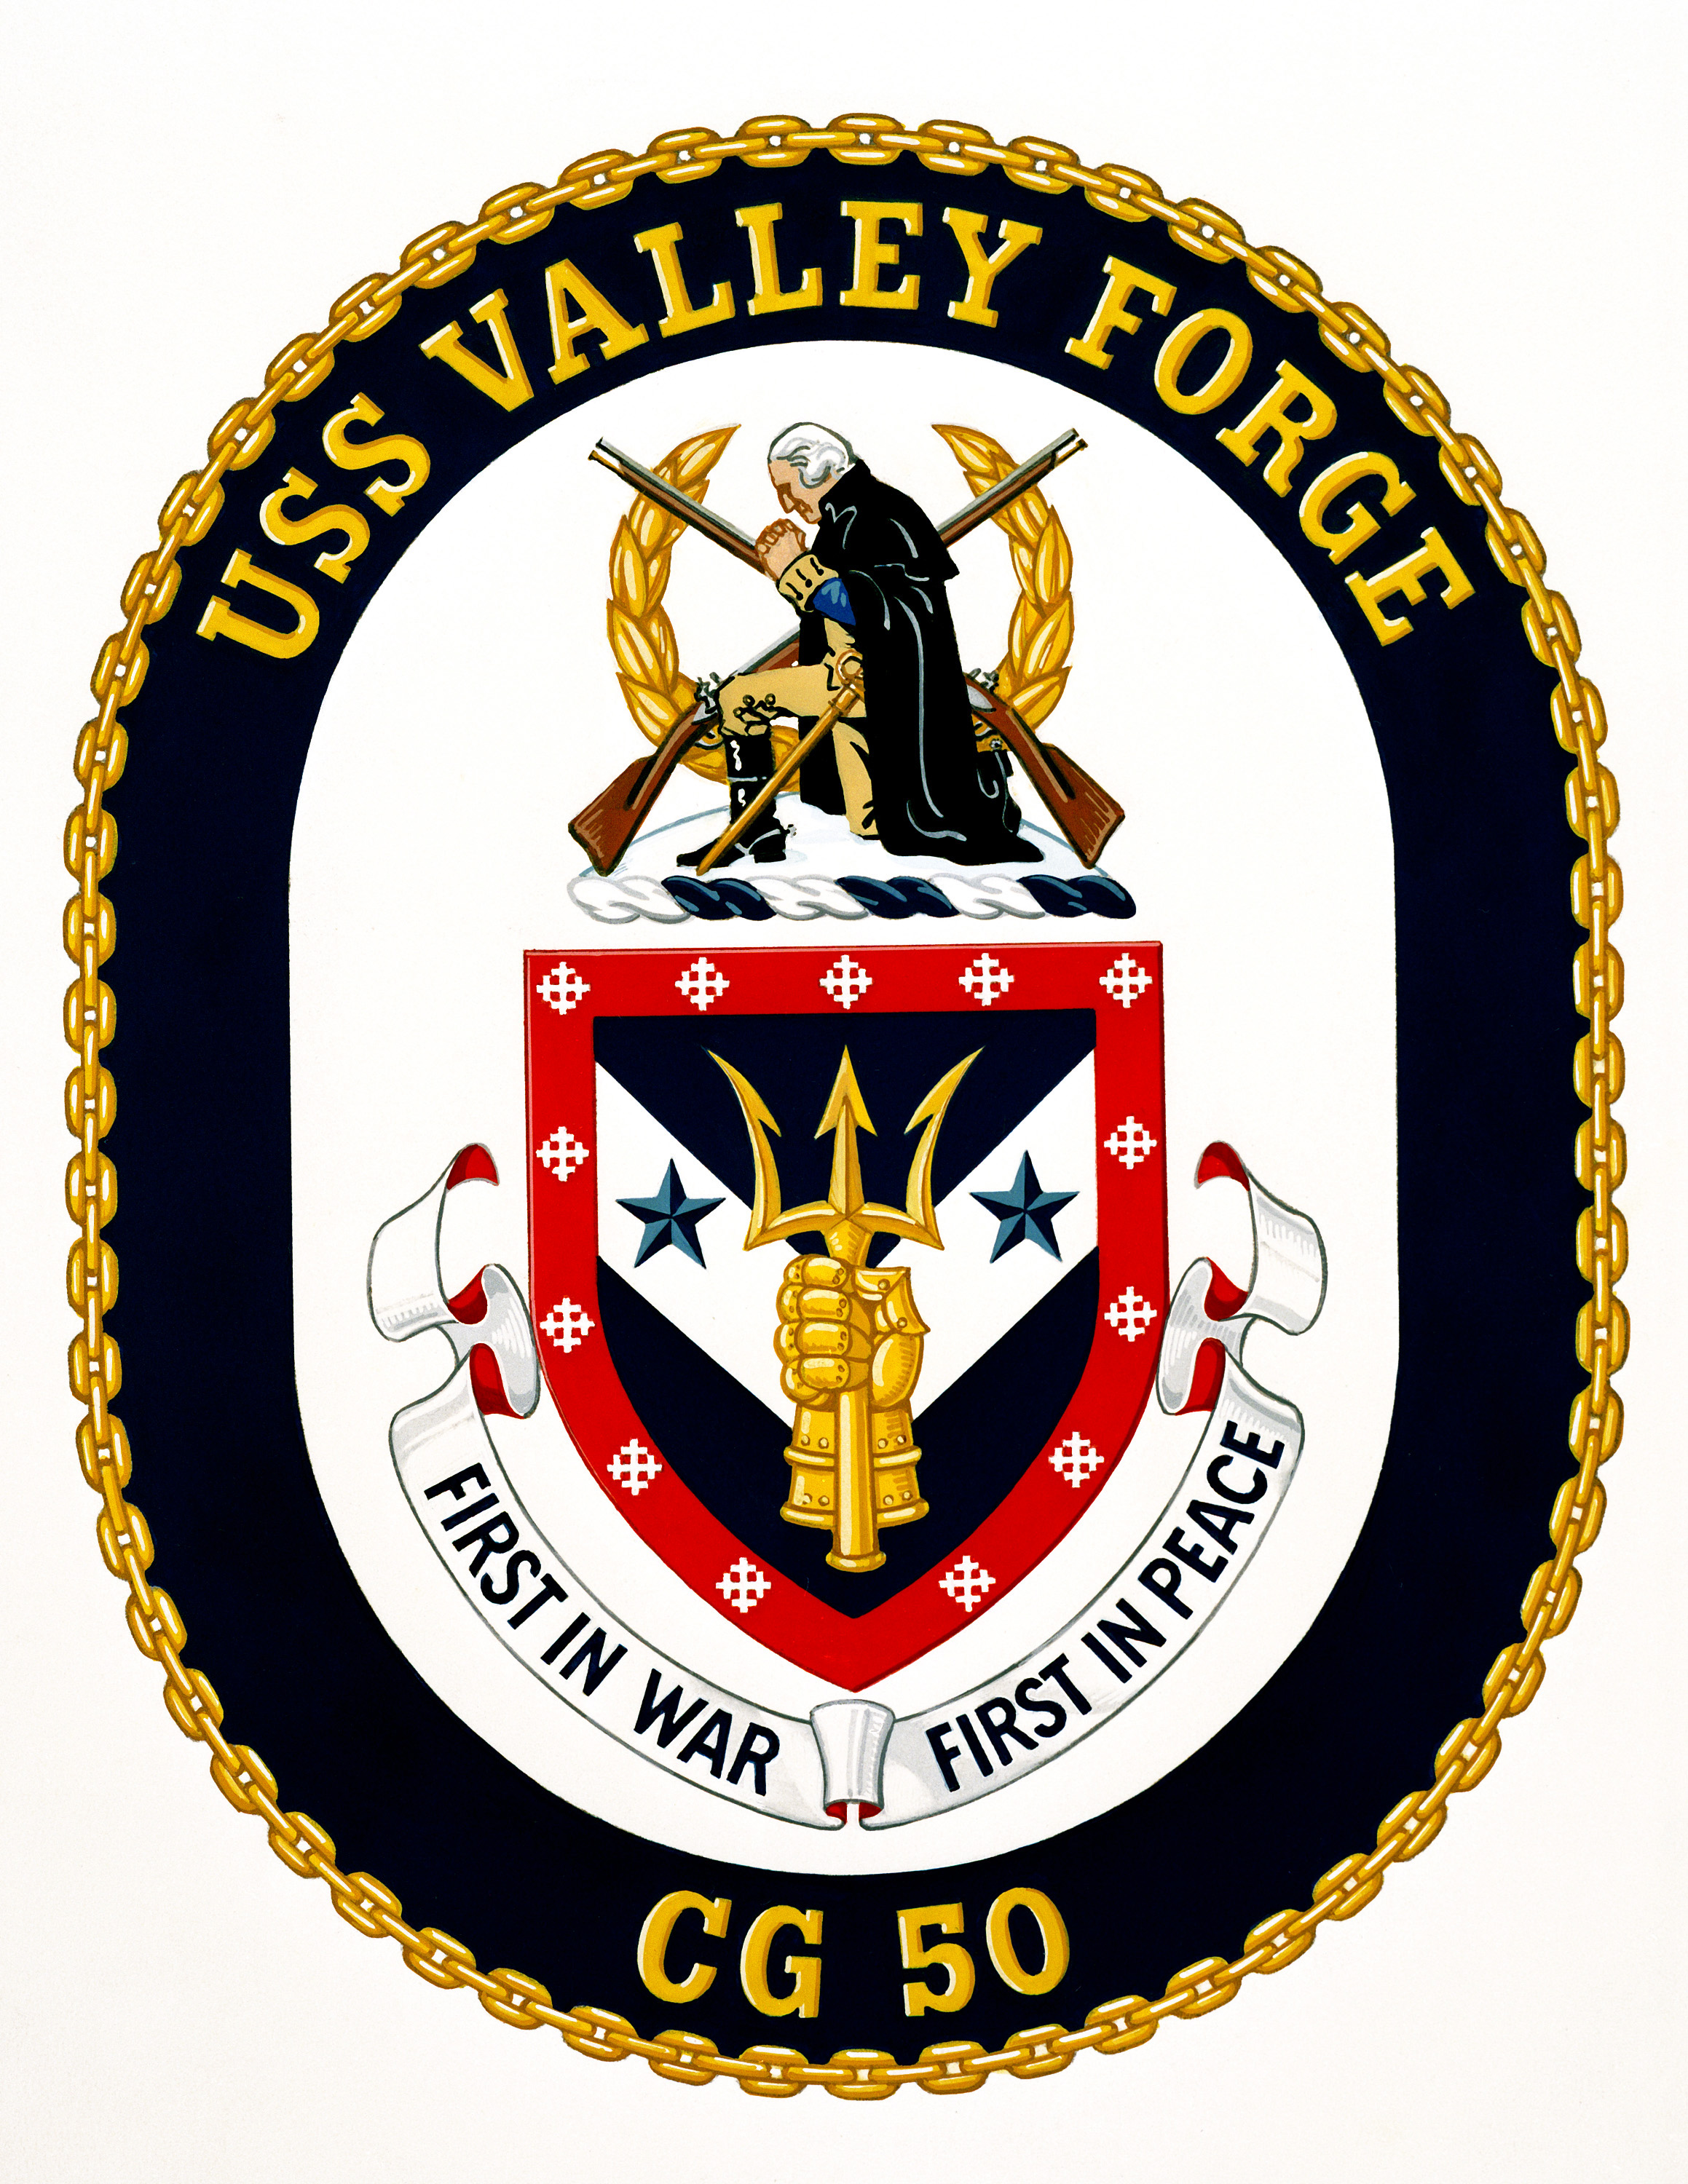 uss valley forge cg 50 military wiki fandom powered by wikia. Black Bedroom Furniture Sets. Home Design Ideas